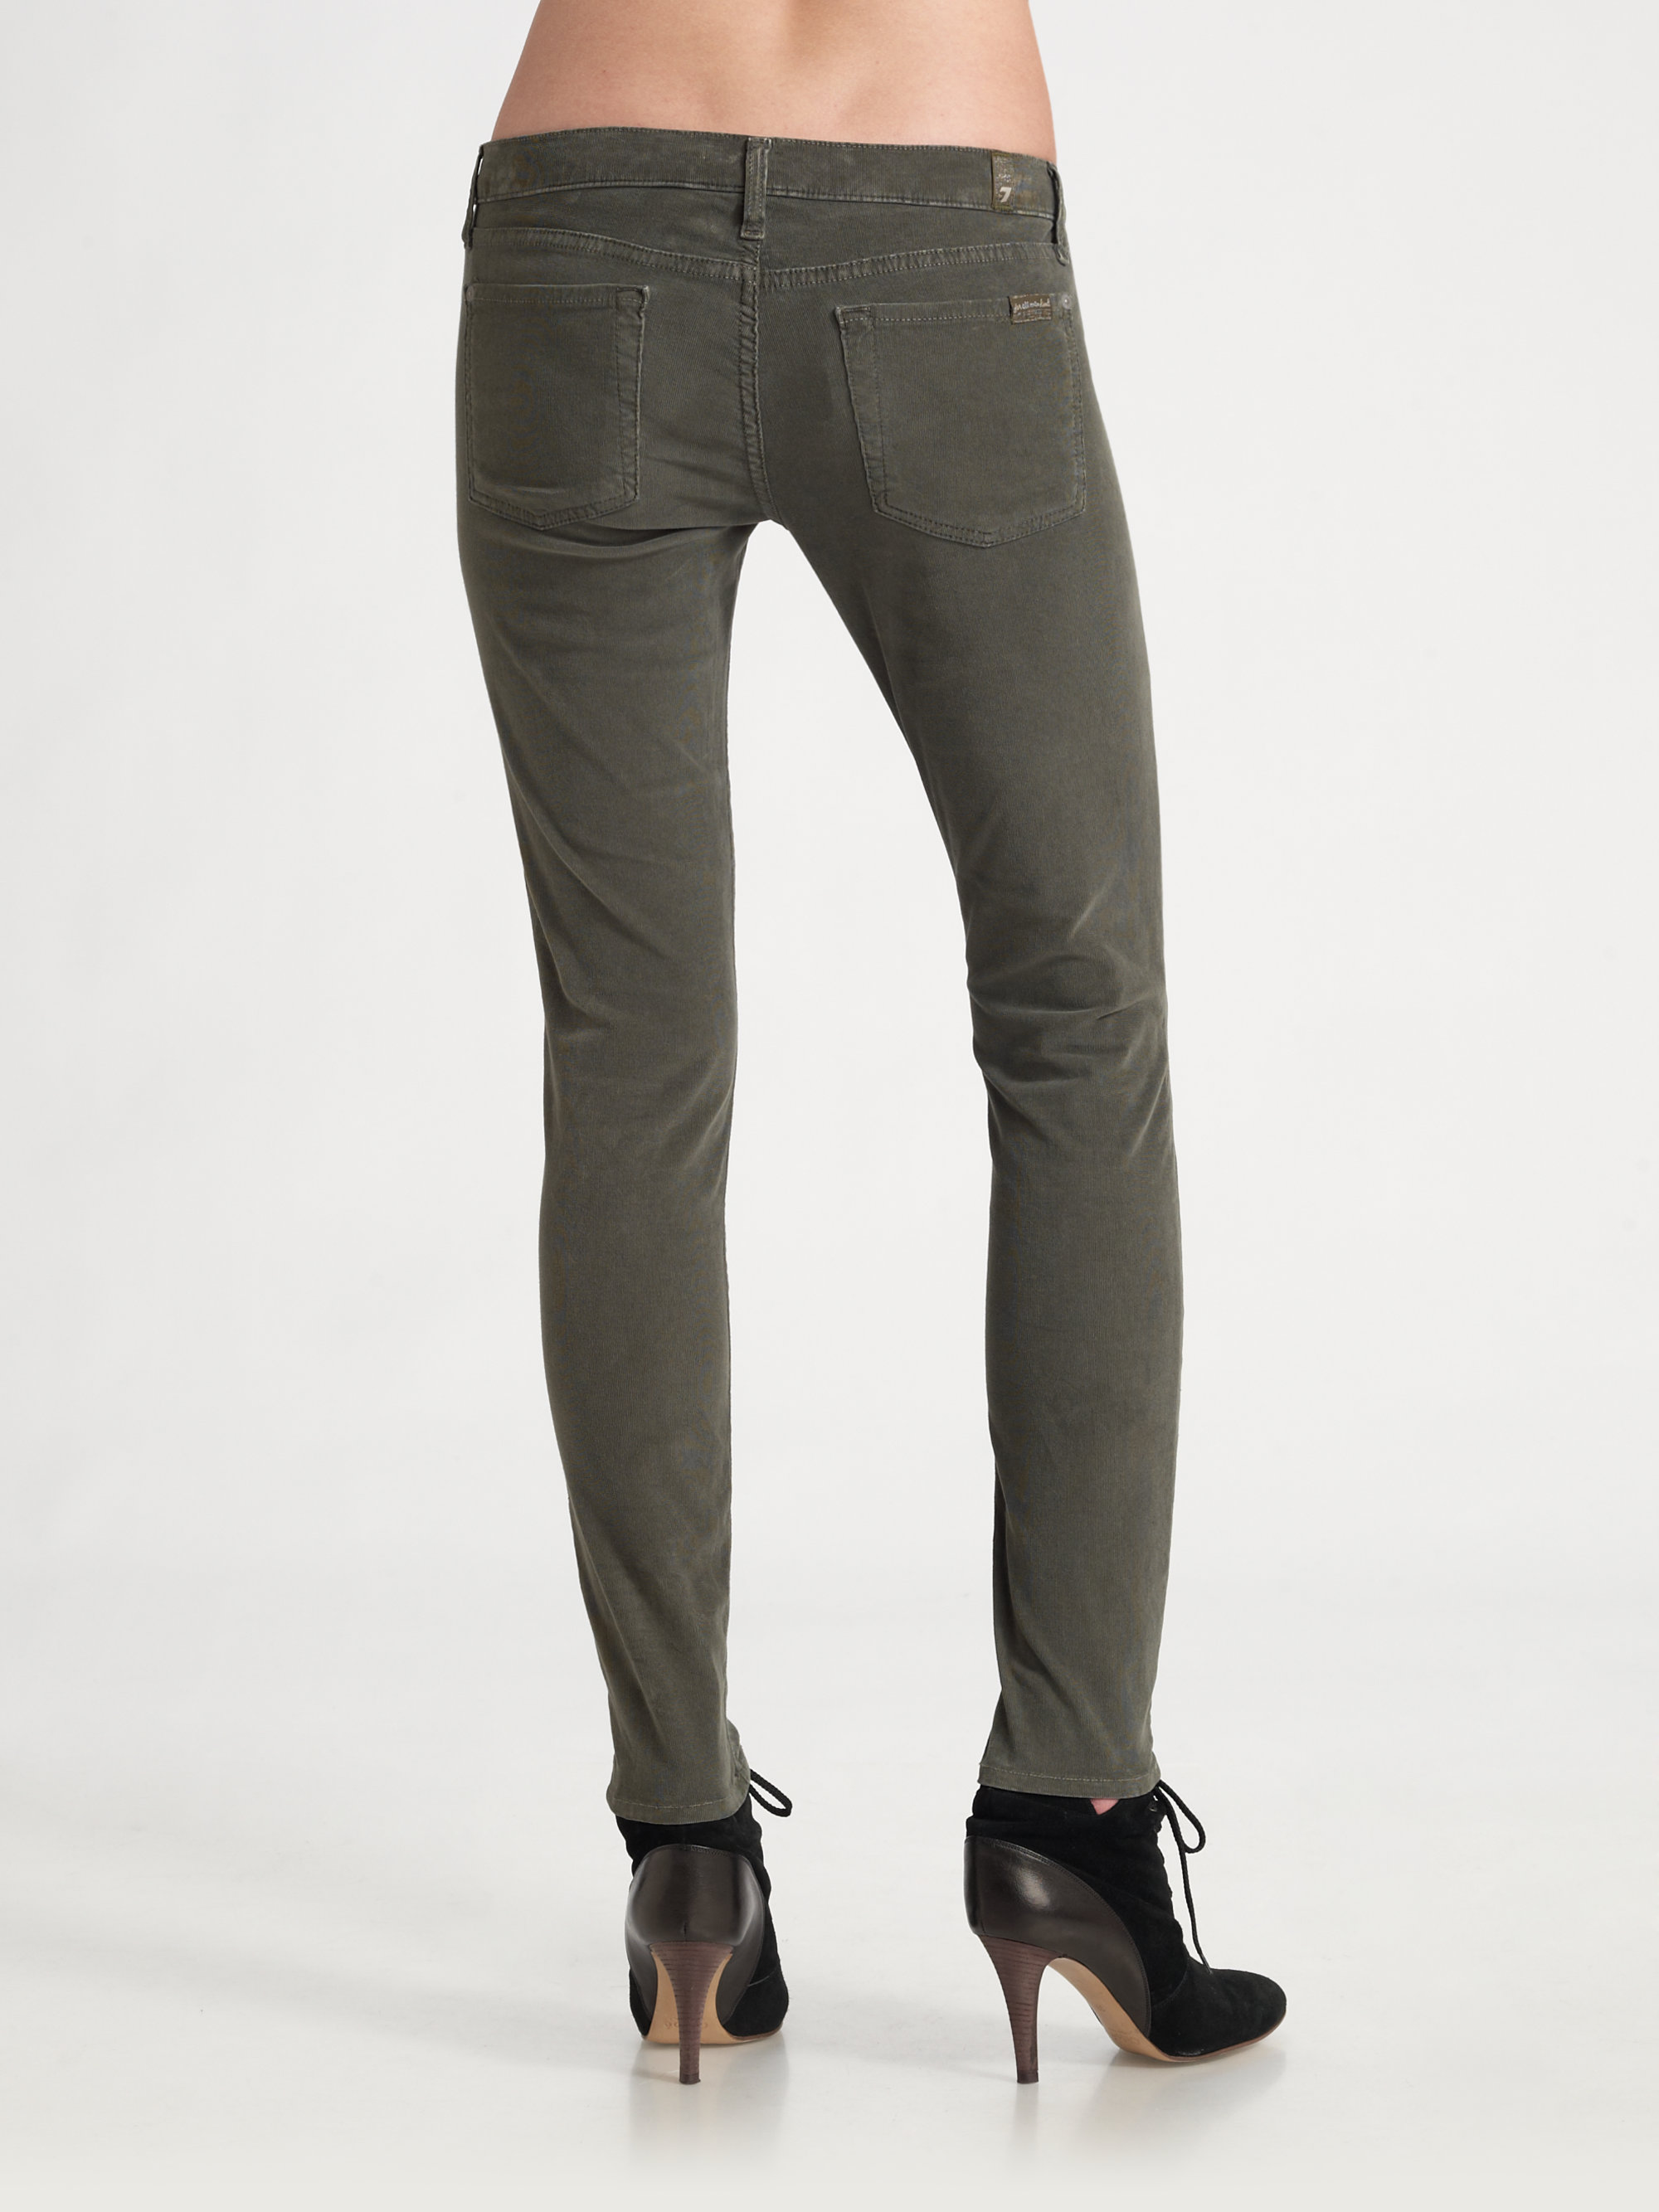 Find great deals on eBay for black skinny corduroy pants. Shop with confidence.